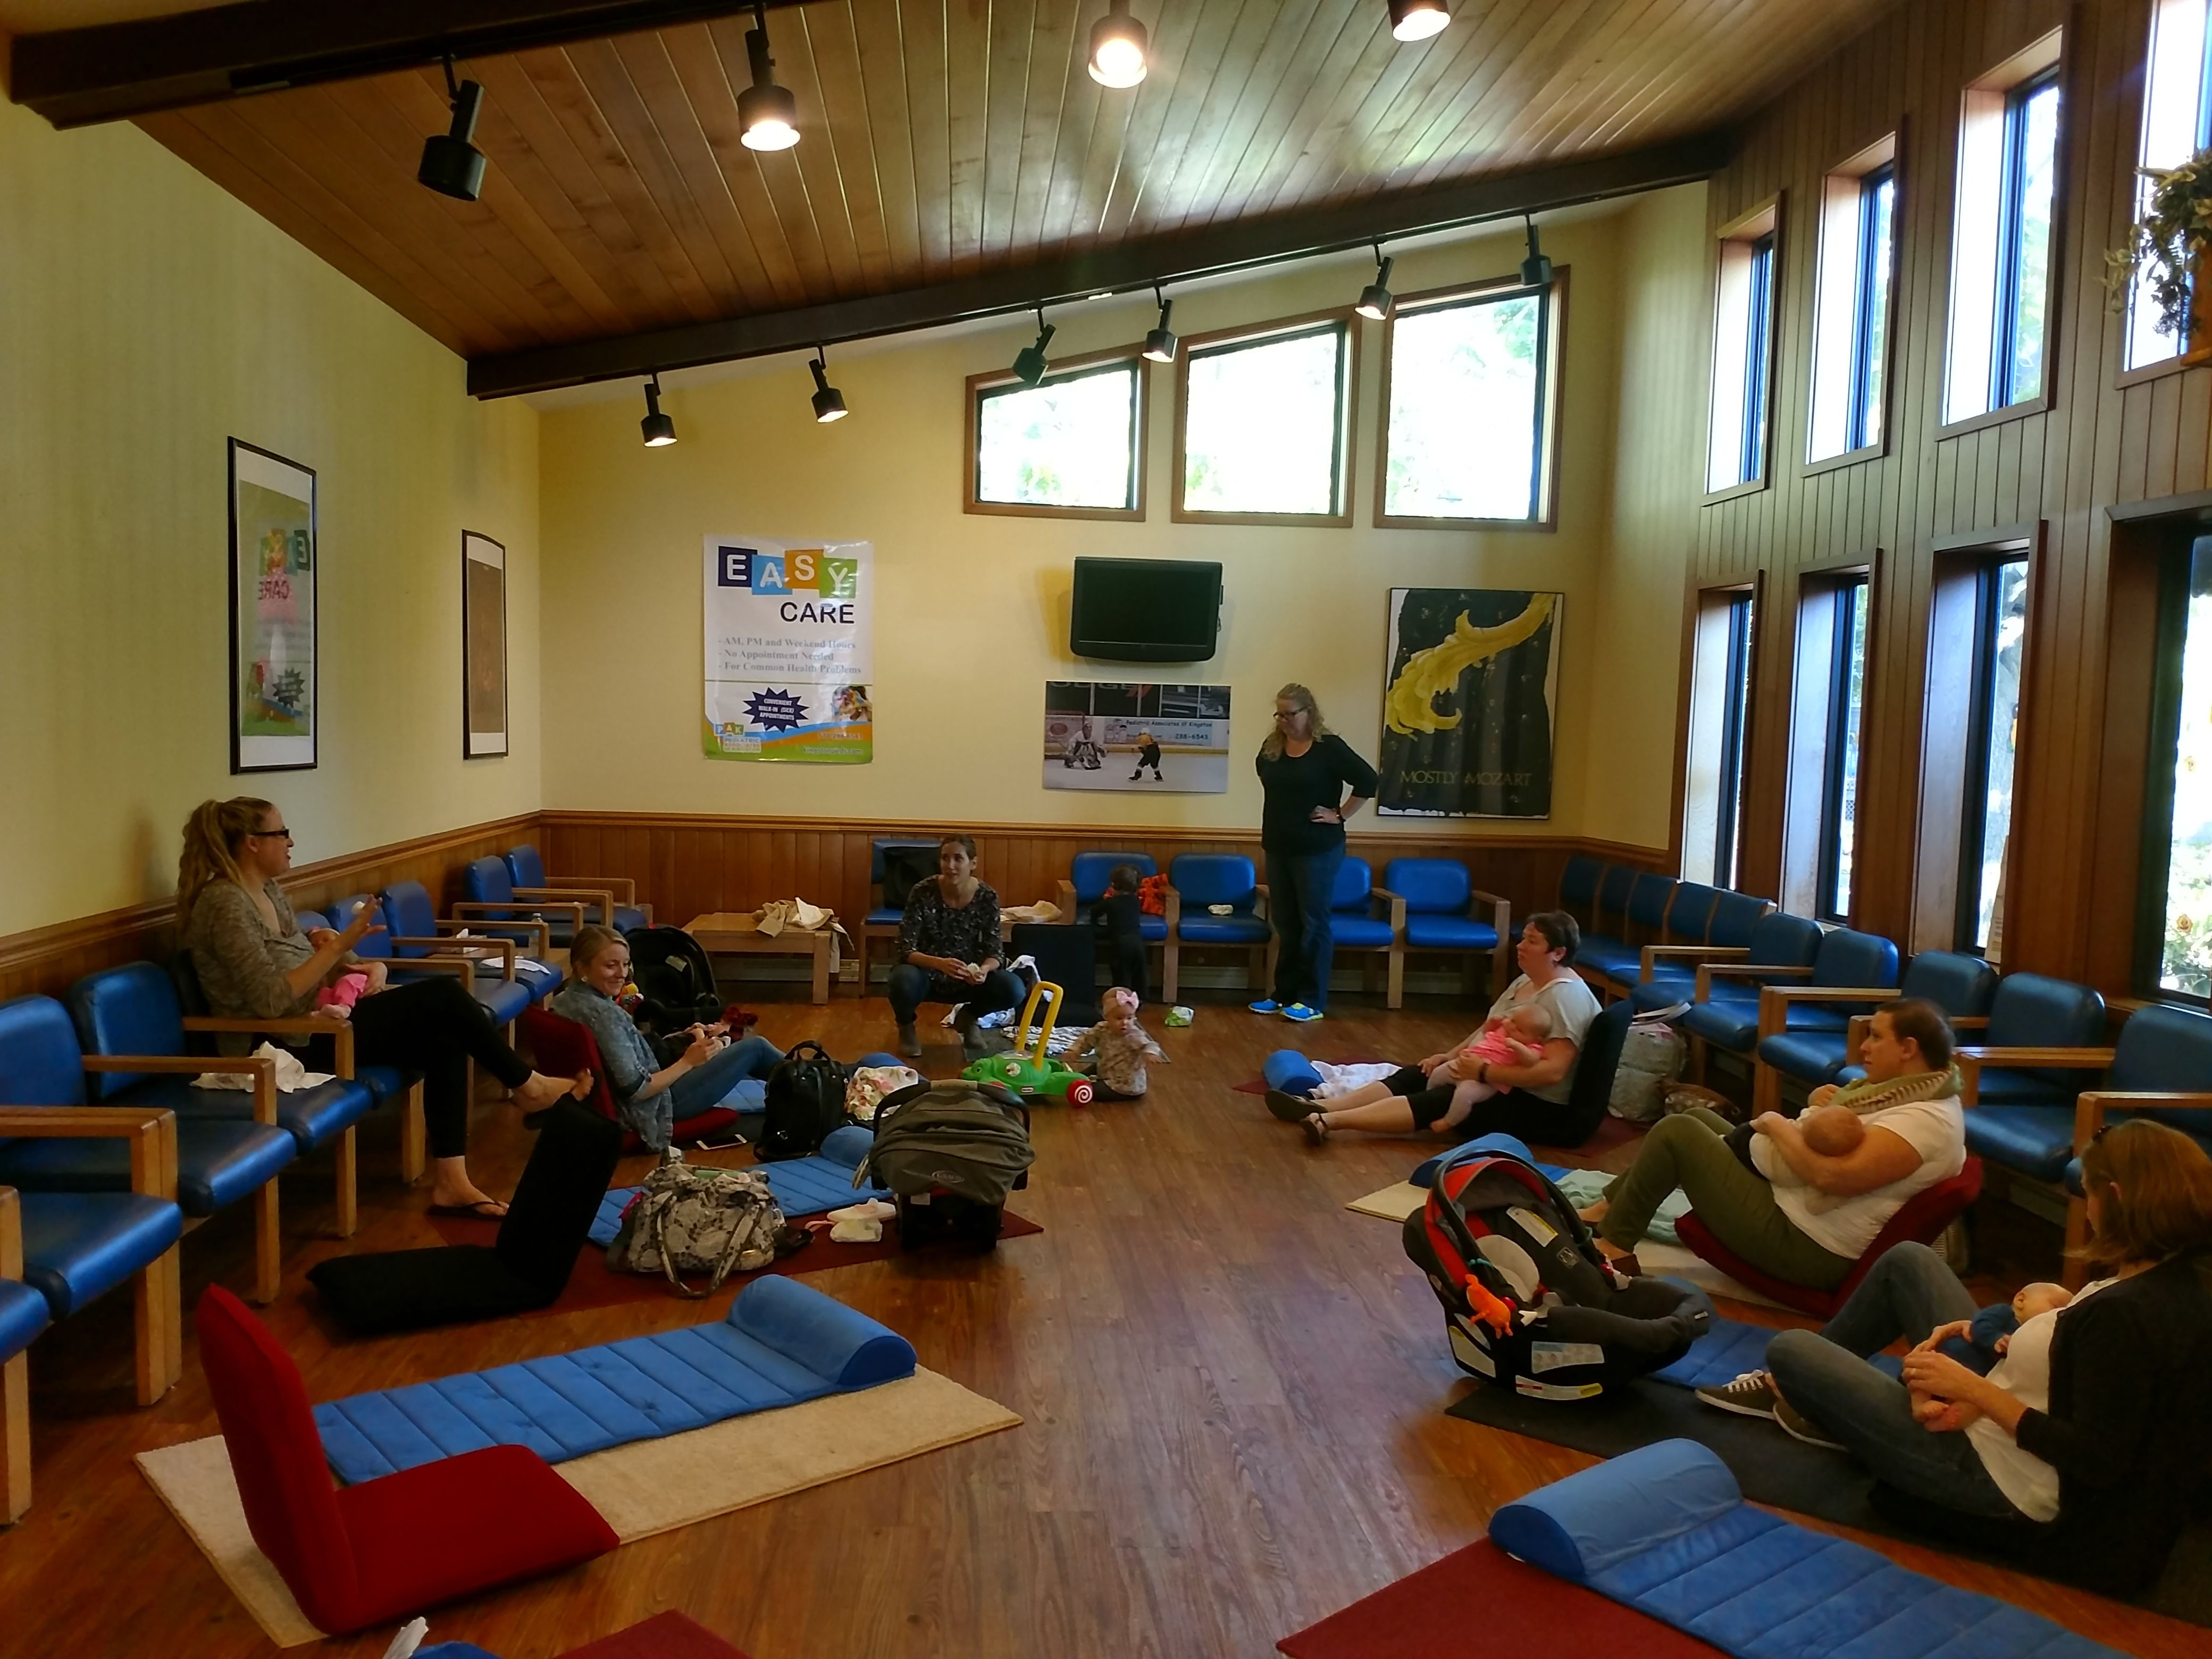 New Moms Social Club meets every Friday and Saturday from